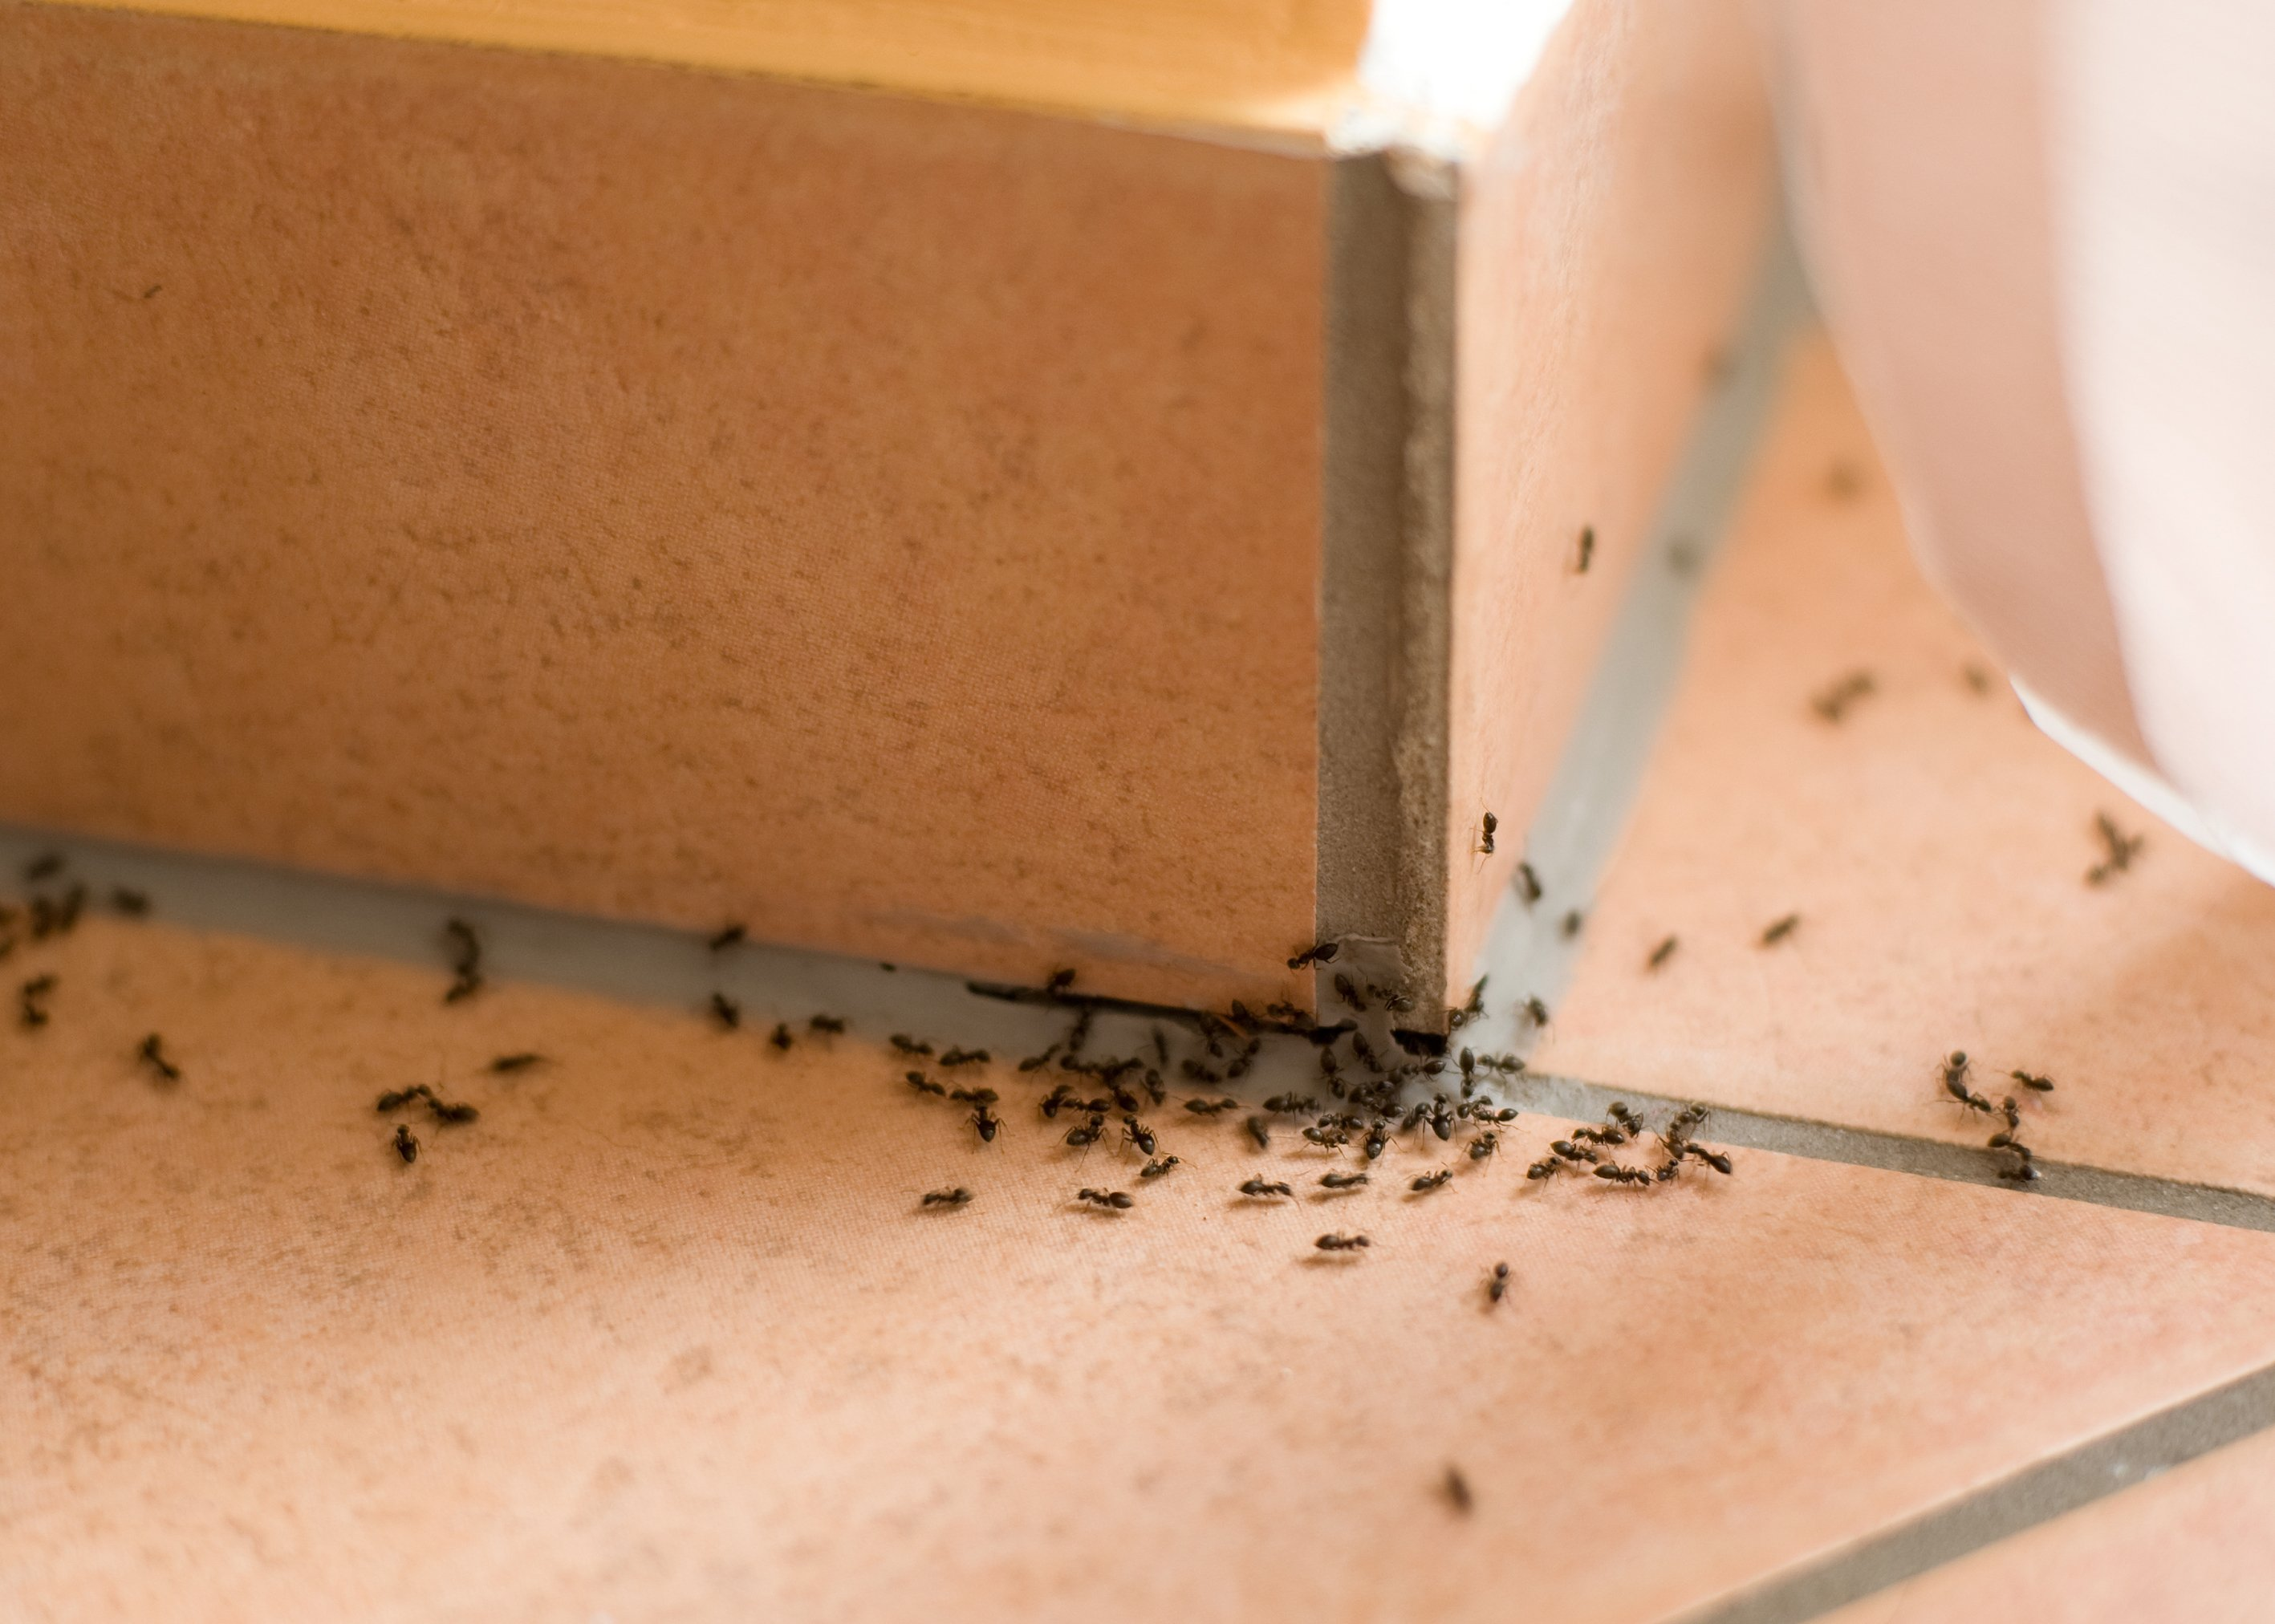 The Top 5 Easiest Ways How to Get Rid of Ants